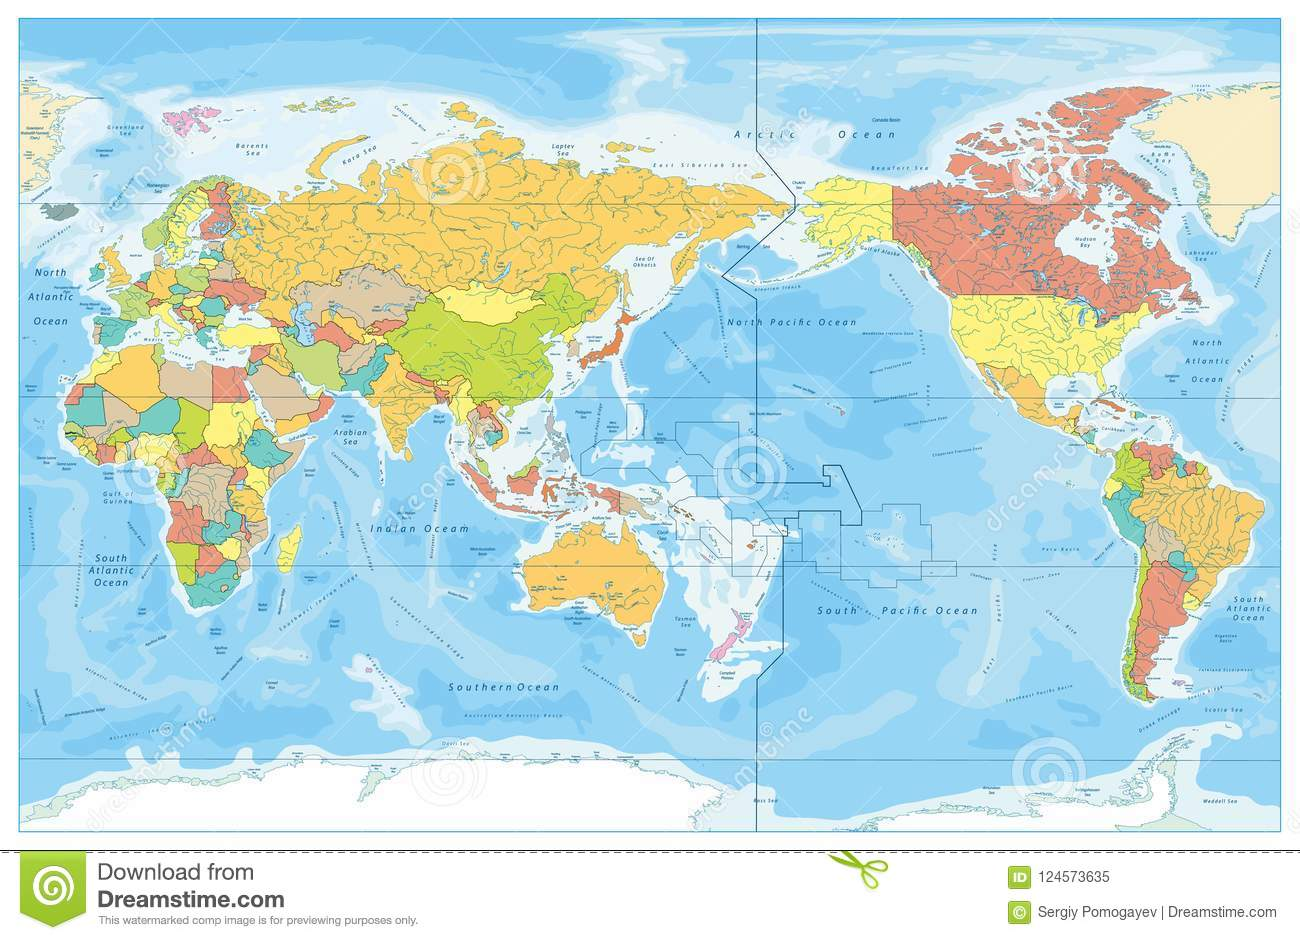 Pacific Centered World Colored Map And Water Bathymetry